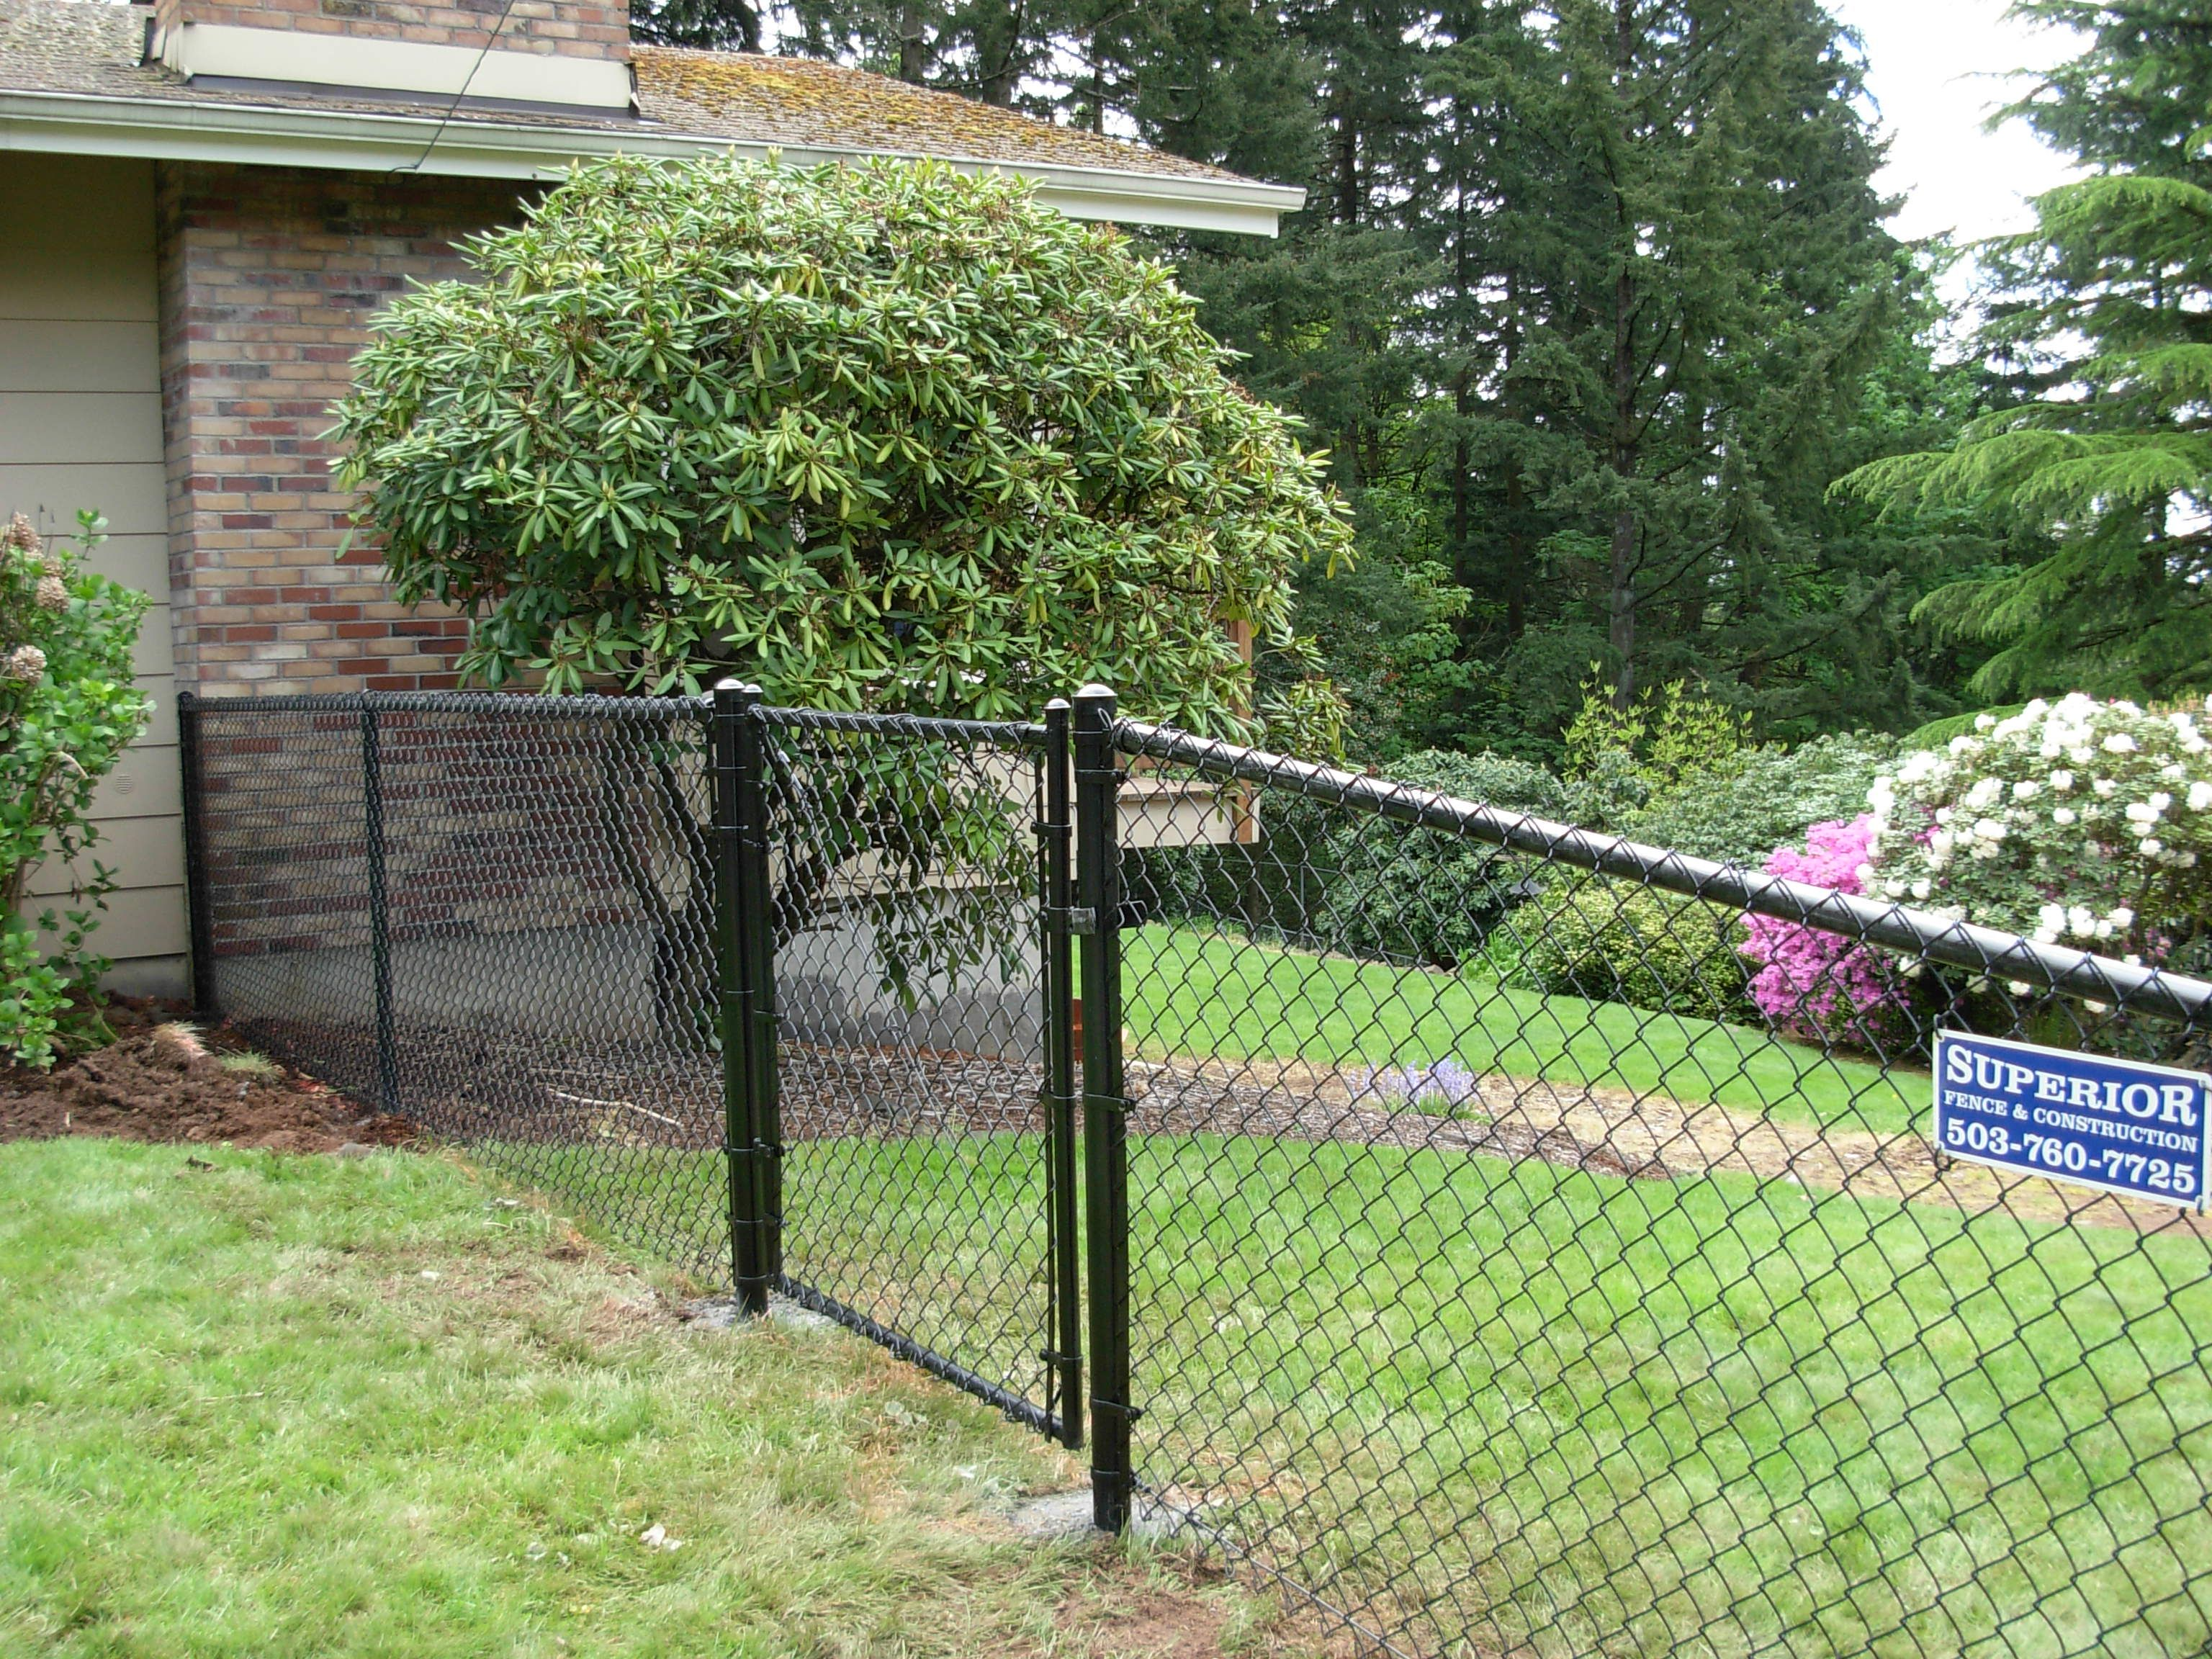 Privacy screen for chain link fence sears - Black Chain Link Fence With Gate 503 760 7725